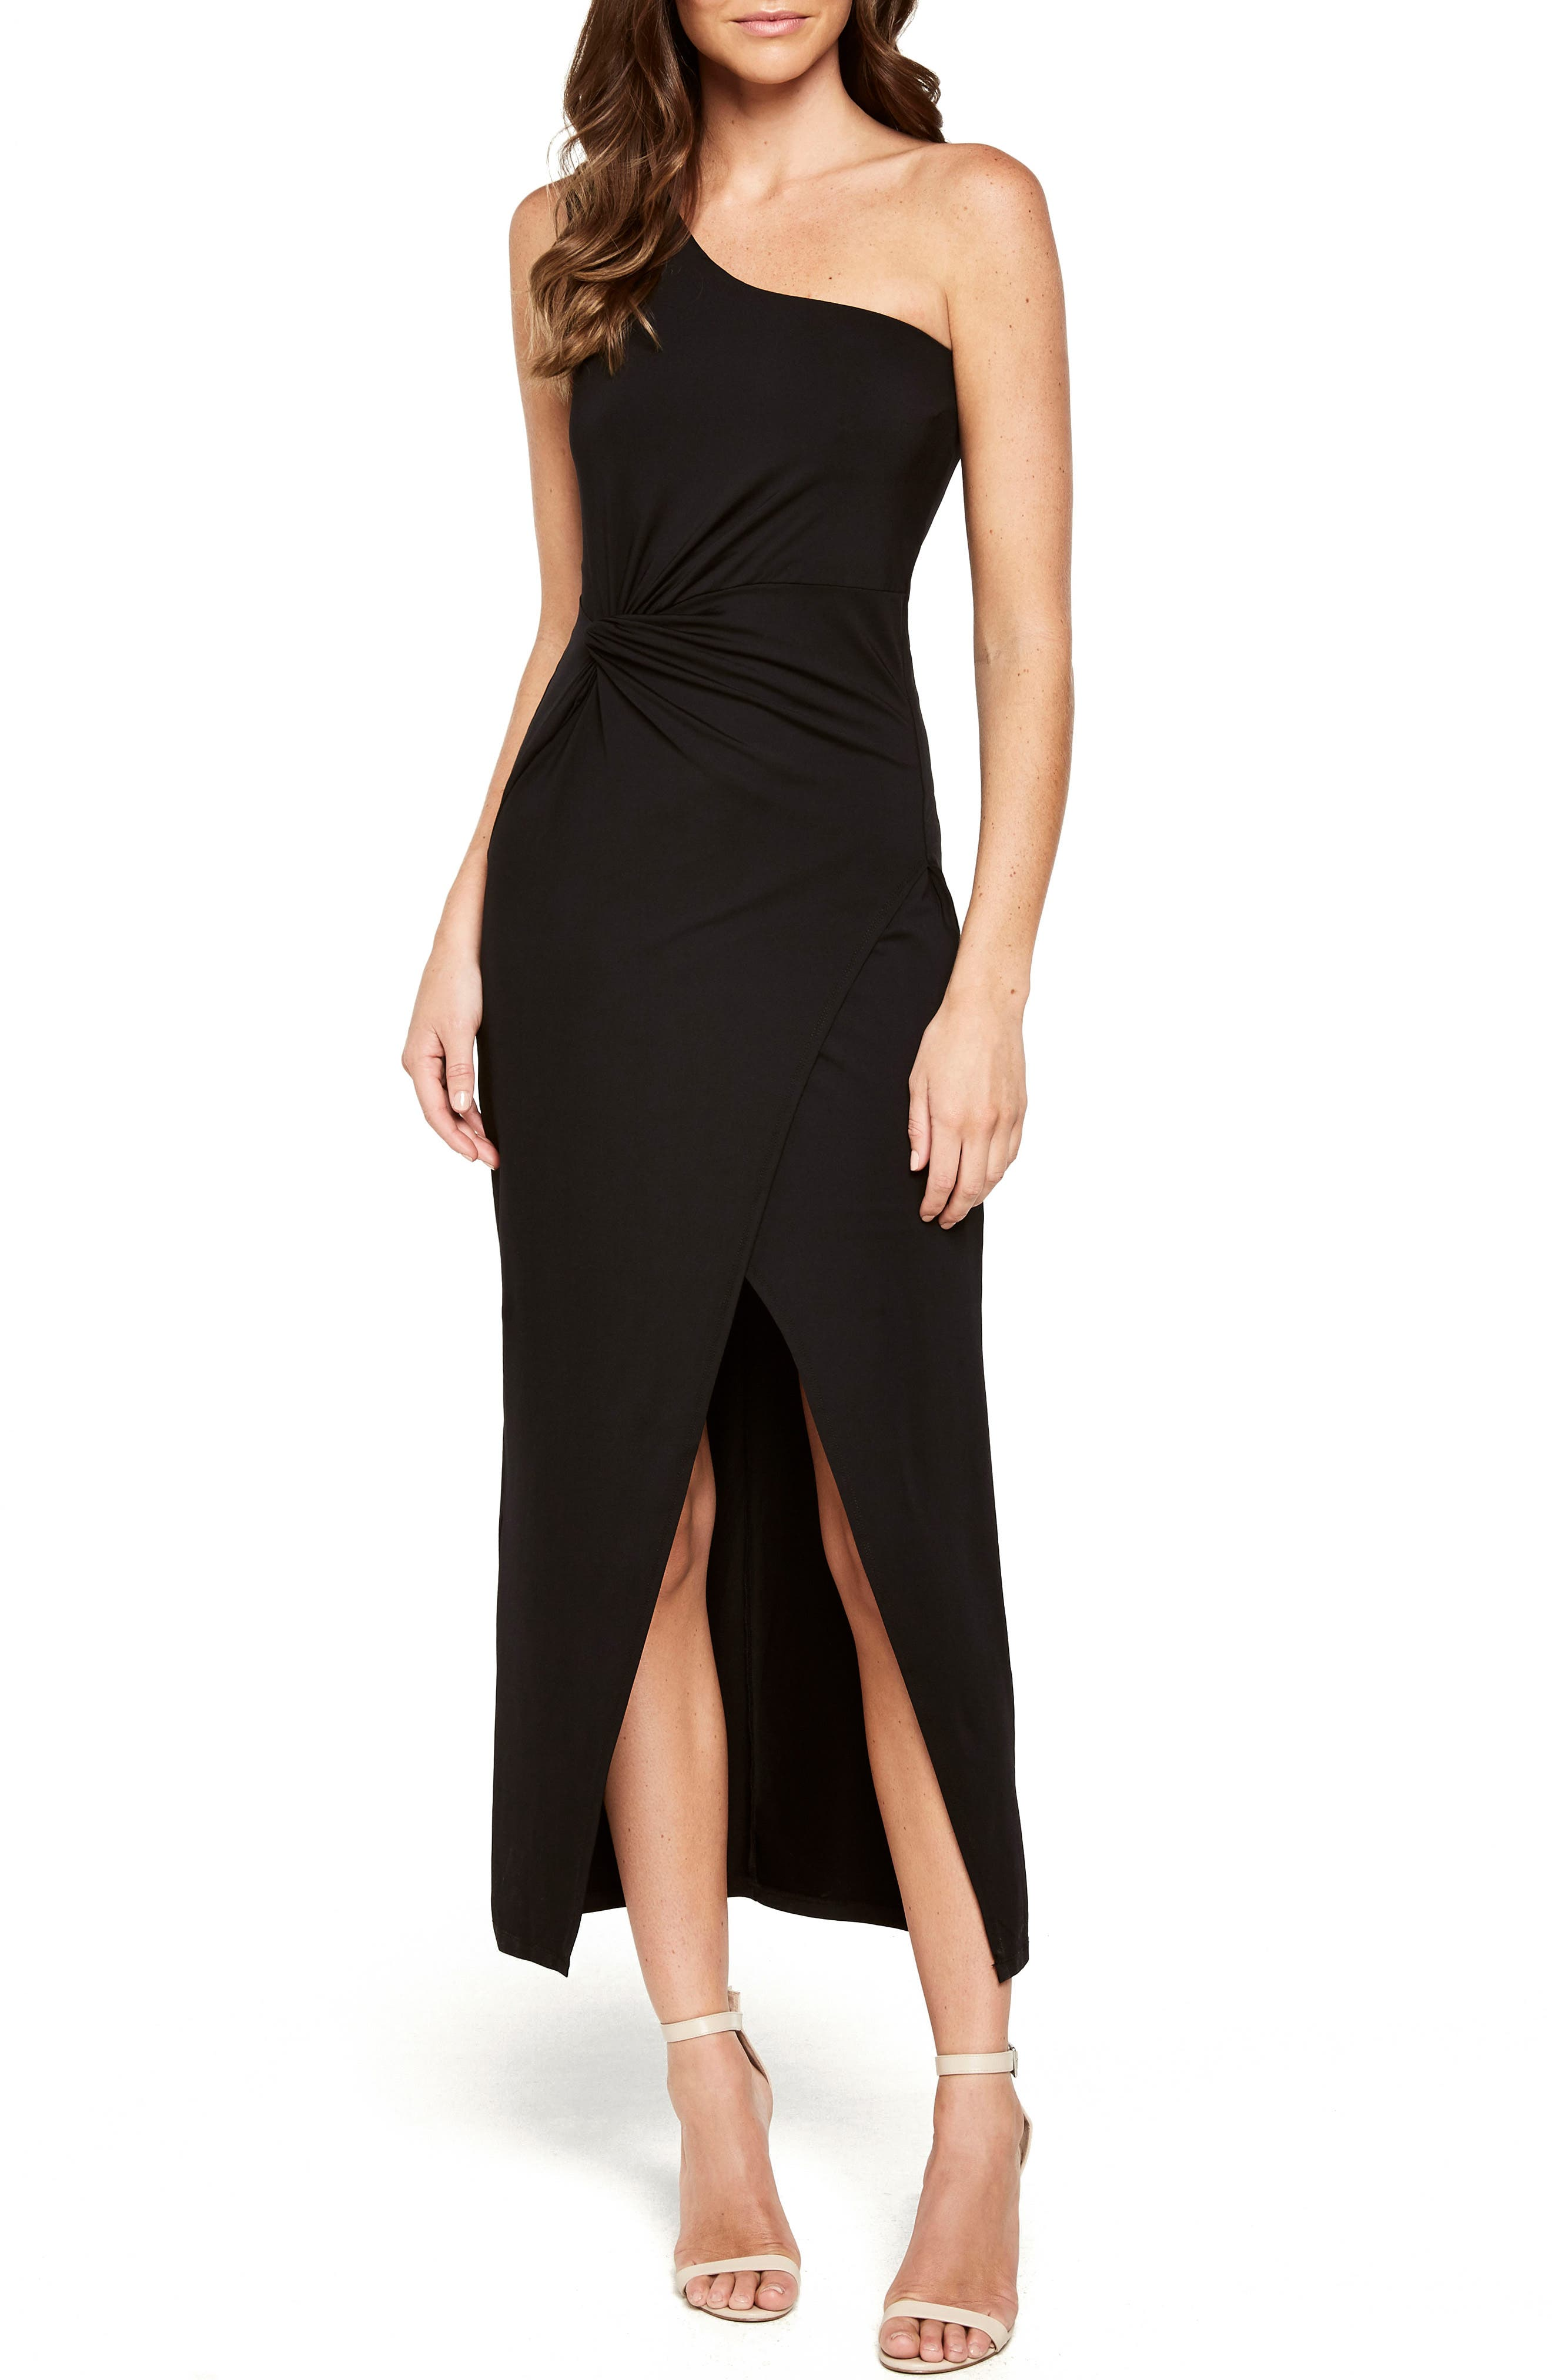 Avril One-Shoulder Maxi Dress,                             Main thumbnail 1, color,                             Black